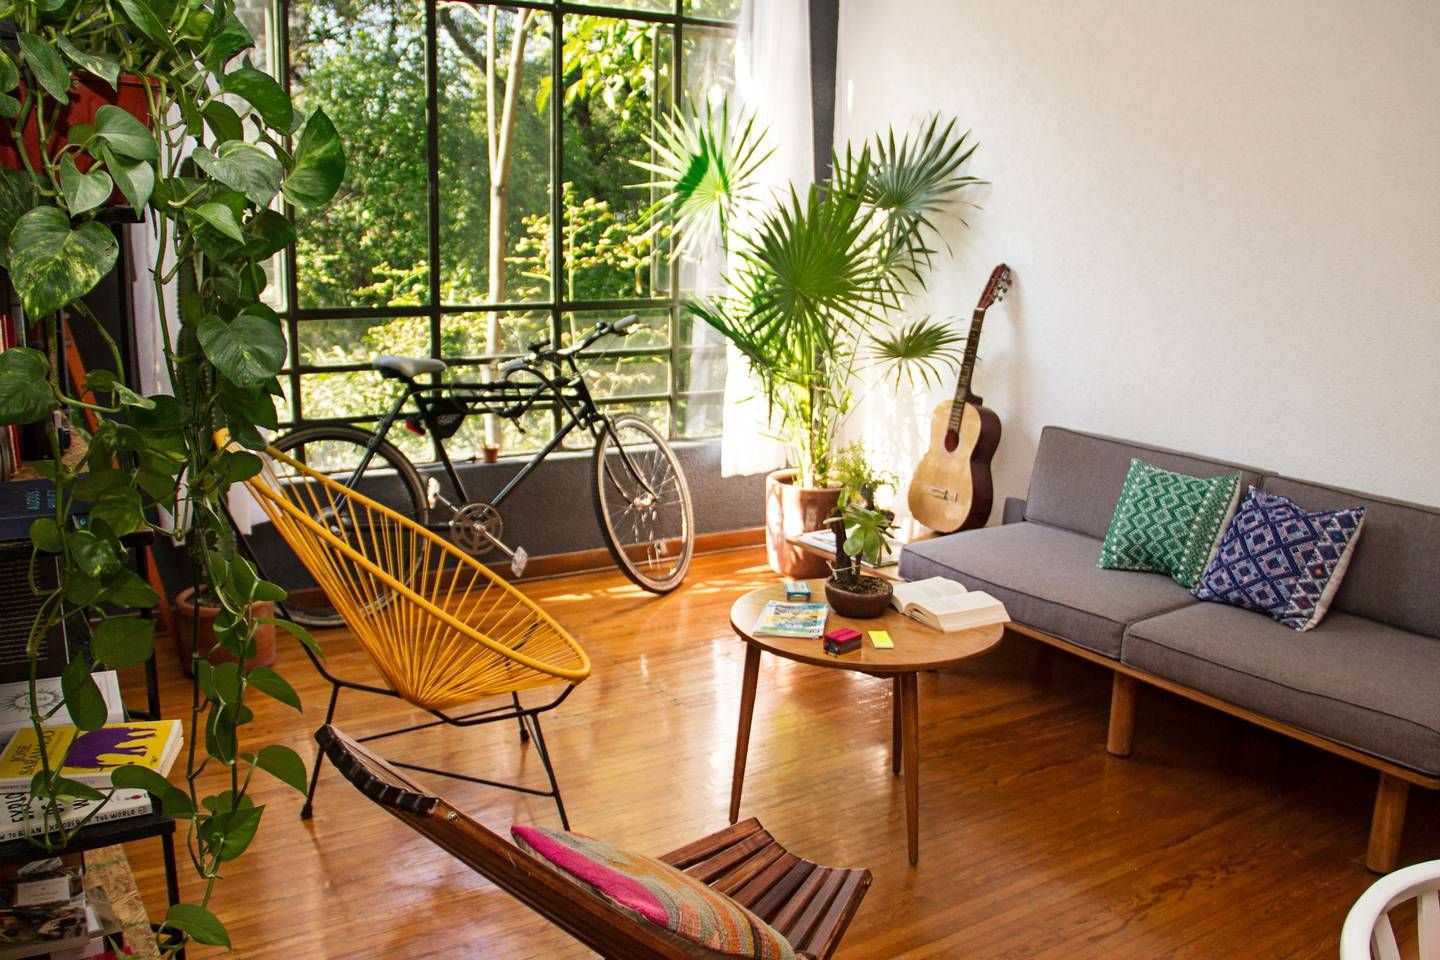 Apartment In The Jungle Apartments For Rent In Mexico City Get 25 Credit With Airbnb If You Sign Up With This Link Http Www Airbnb Com C Groberts Varanda